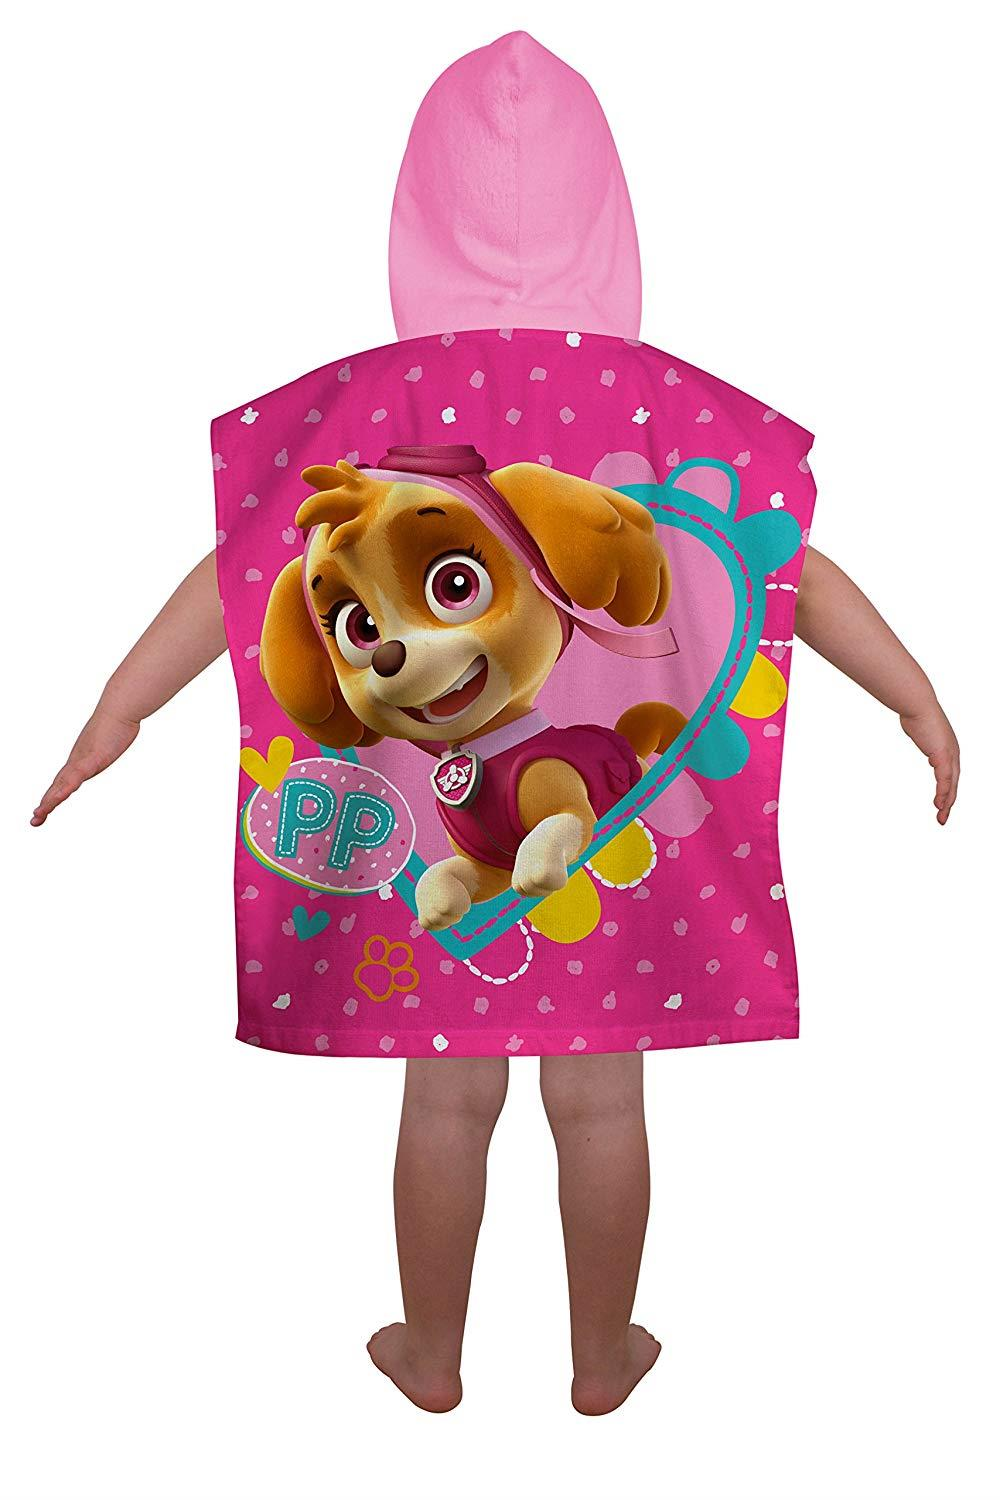 Kids-Boys-Novelty-Girls-Character-Hooded-Towel-Poncho-Beach-Bath-Swim thumbnail 29